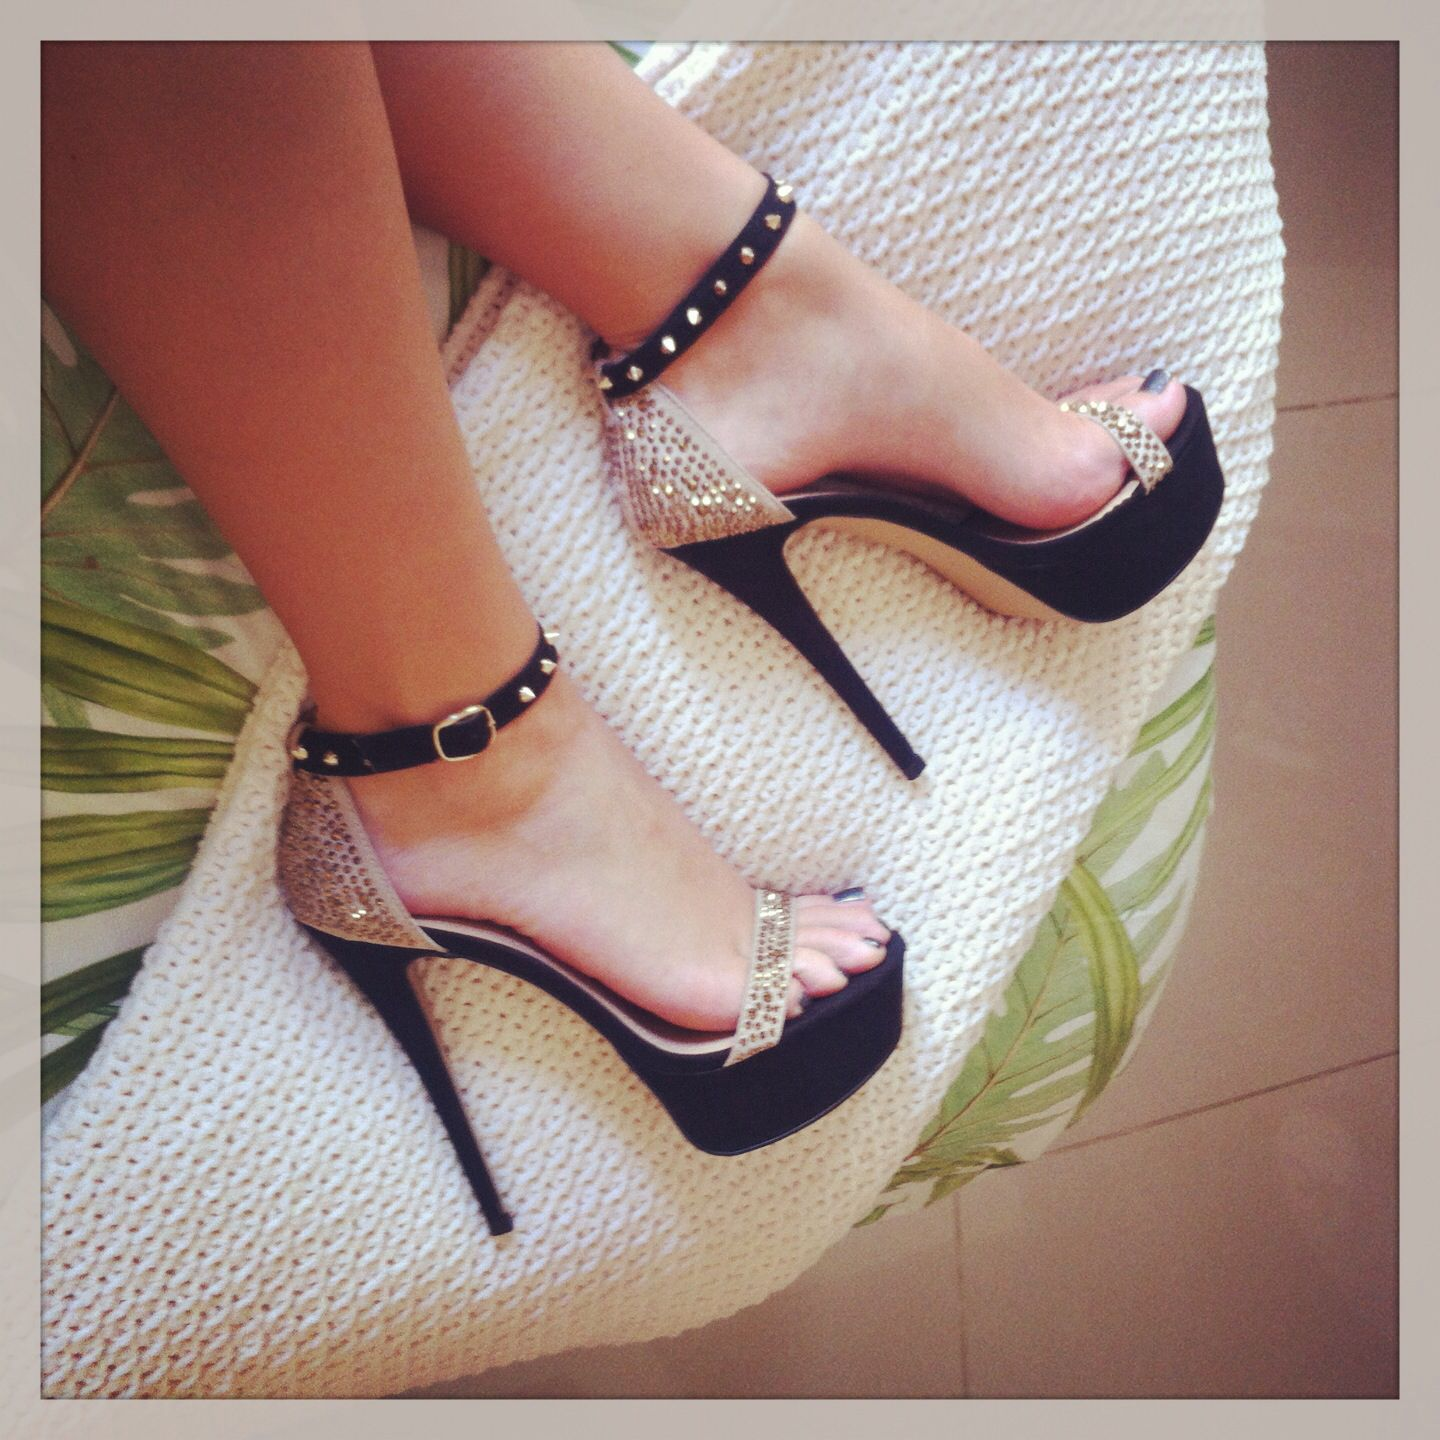 Fashion - Shoes. Steve Madden high heels. Follow LadyLexiStyle on Instagram  #lls #